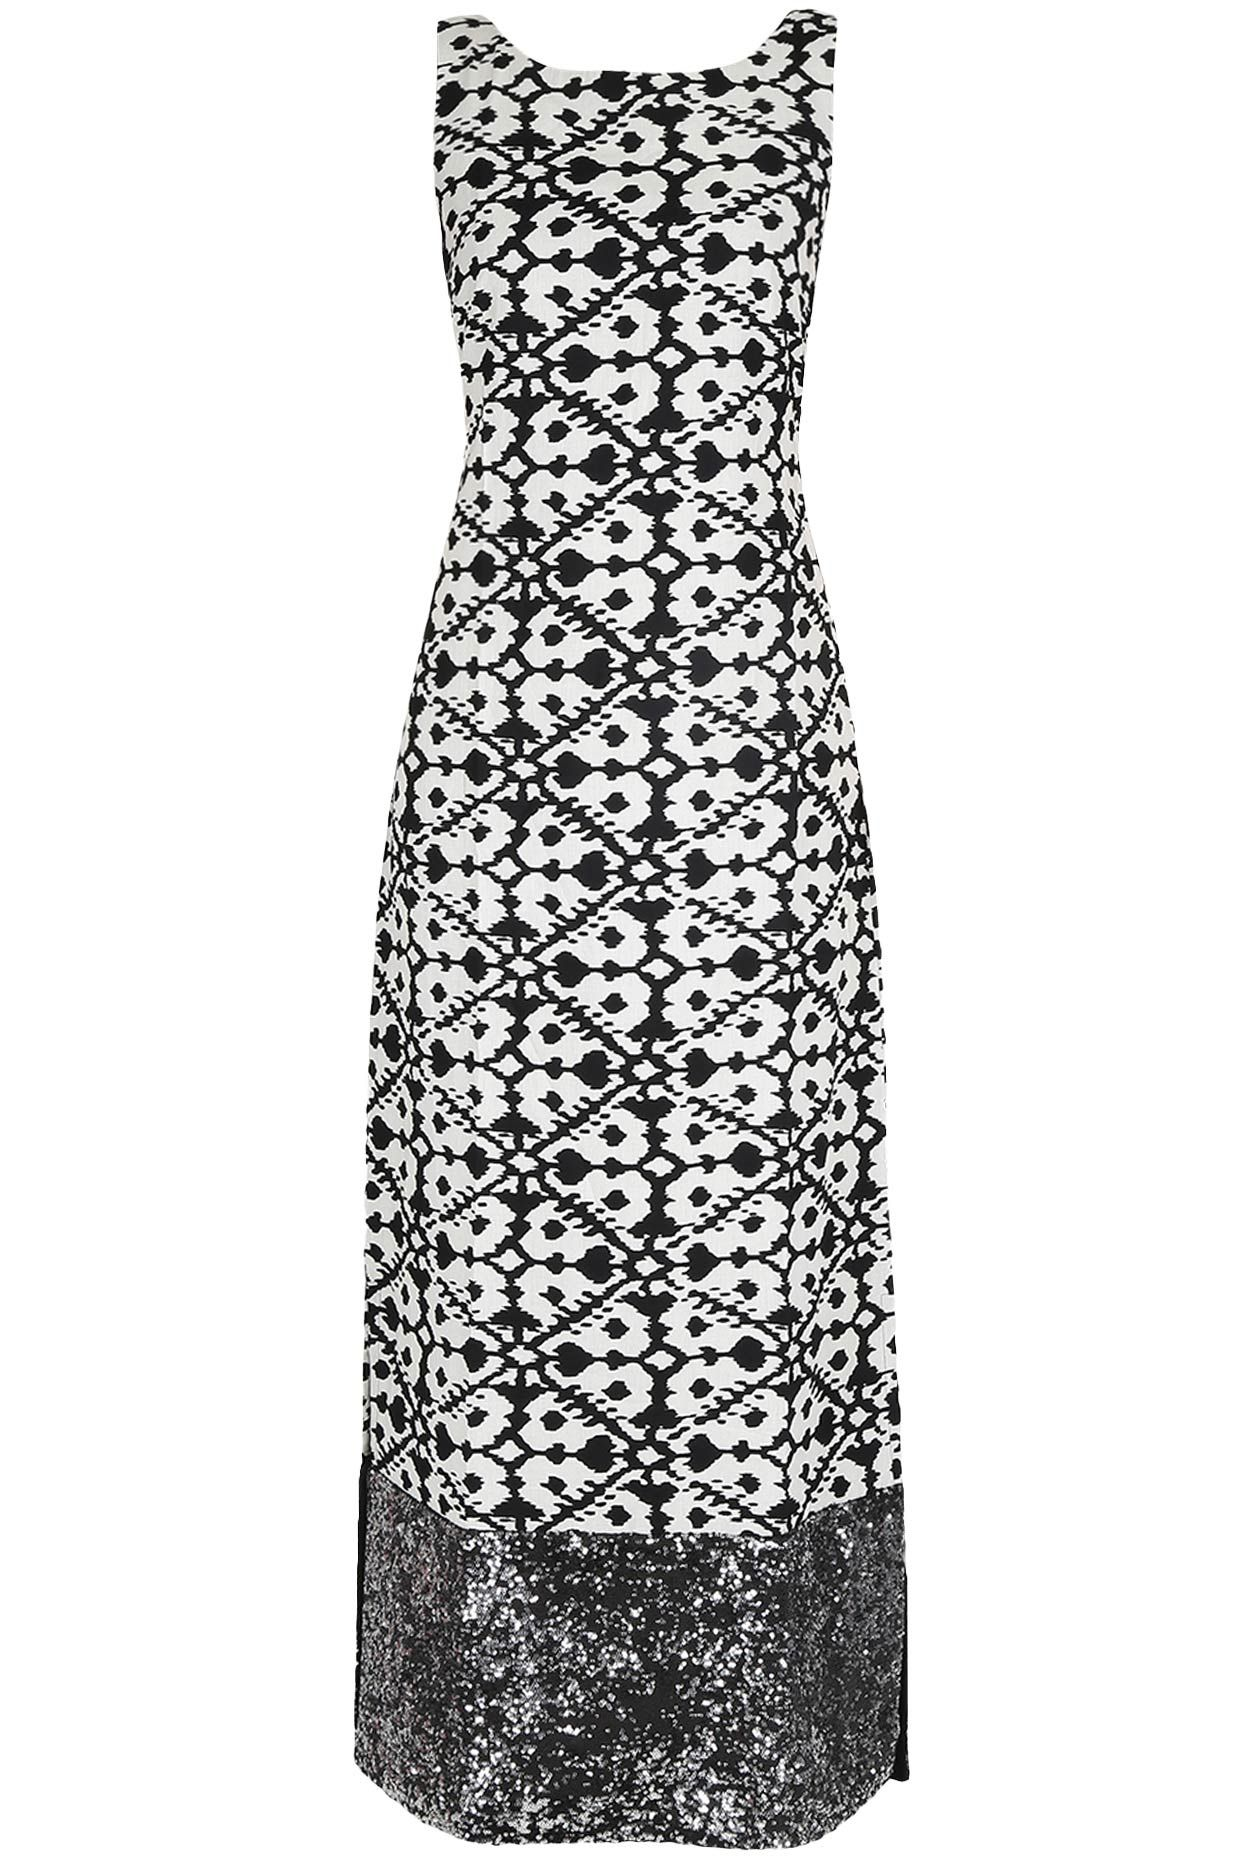 QUENCH Black and white ikat straight maxi dress available only at ...